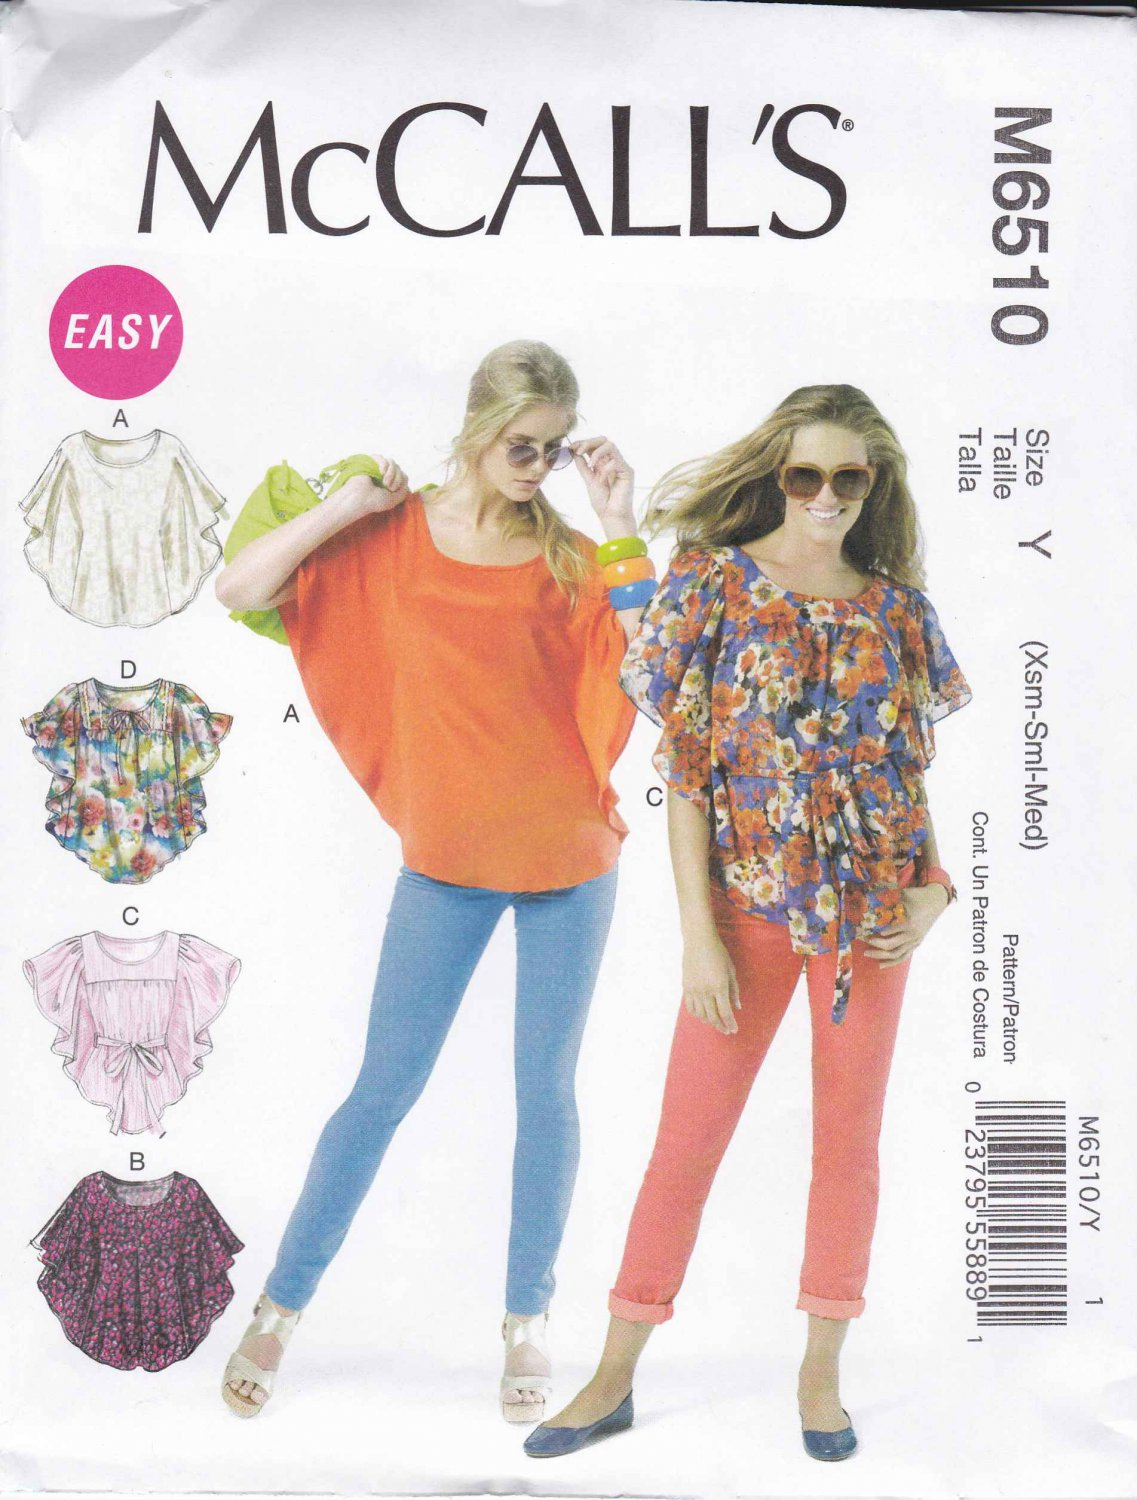 McCall's Sewing Pattern 6510 Misses Size 4-14 Easy Pullover Loose-Fitting Tops Belt